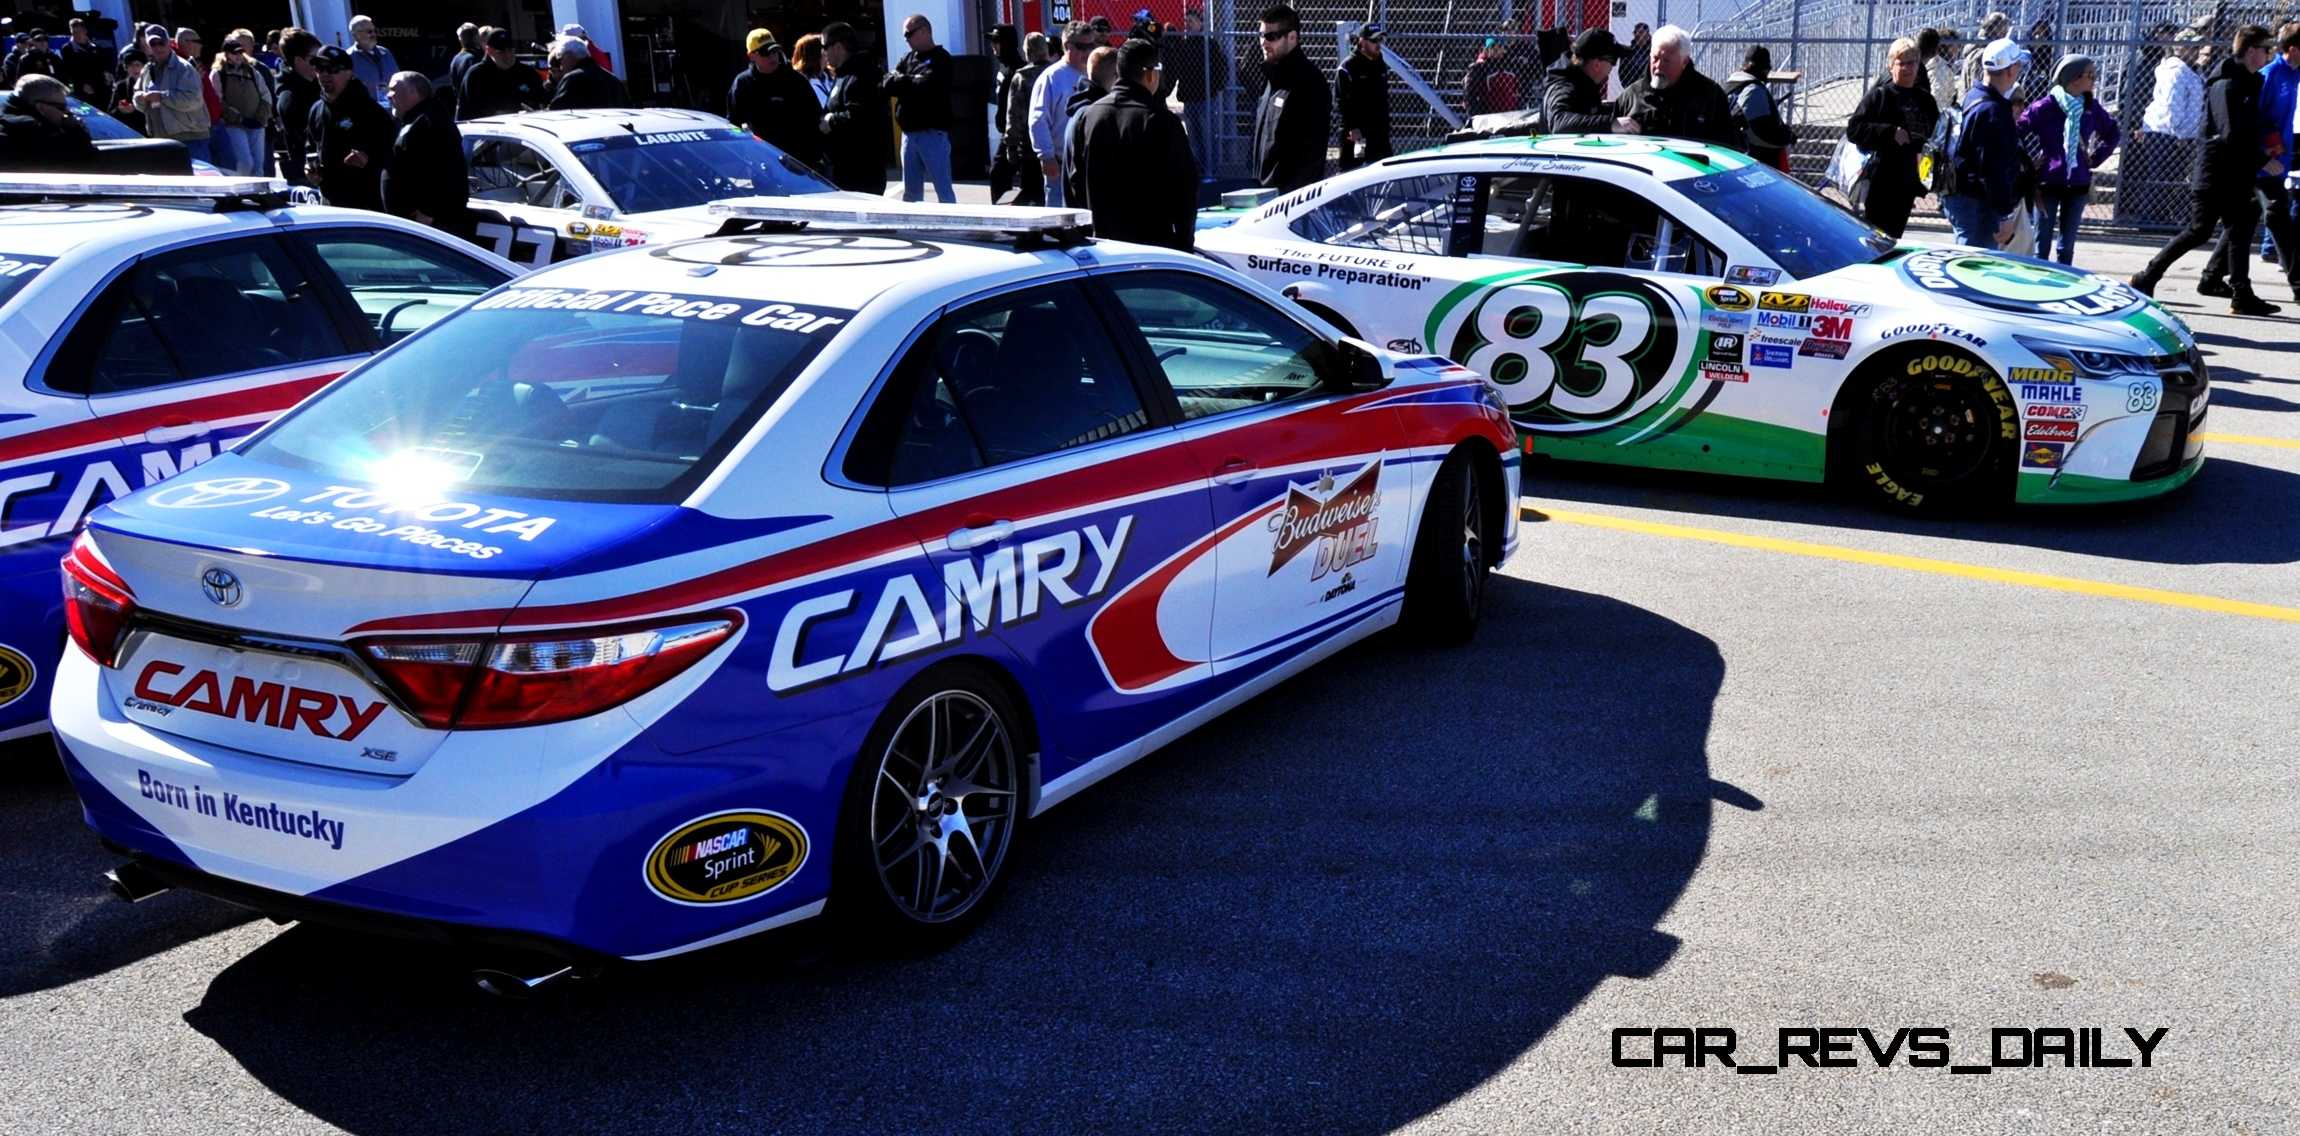 2017 Toyota Camry Daytona 500 Official Pace Car 24